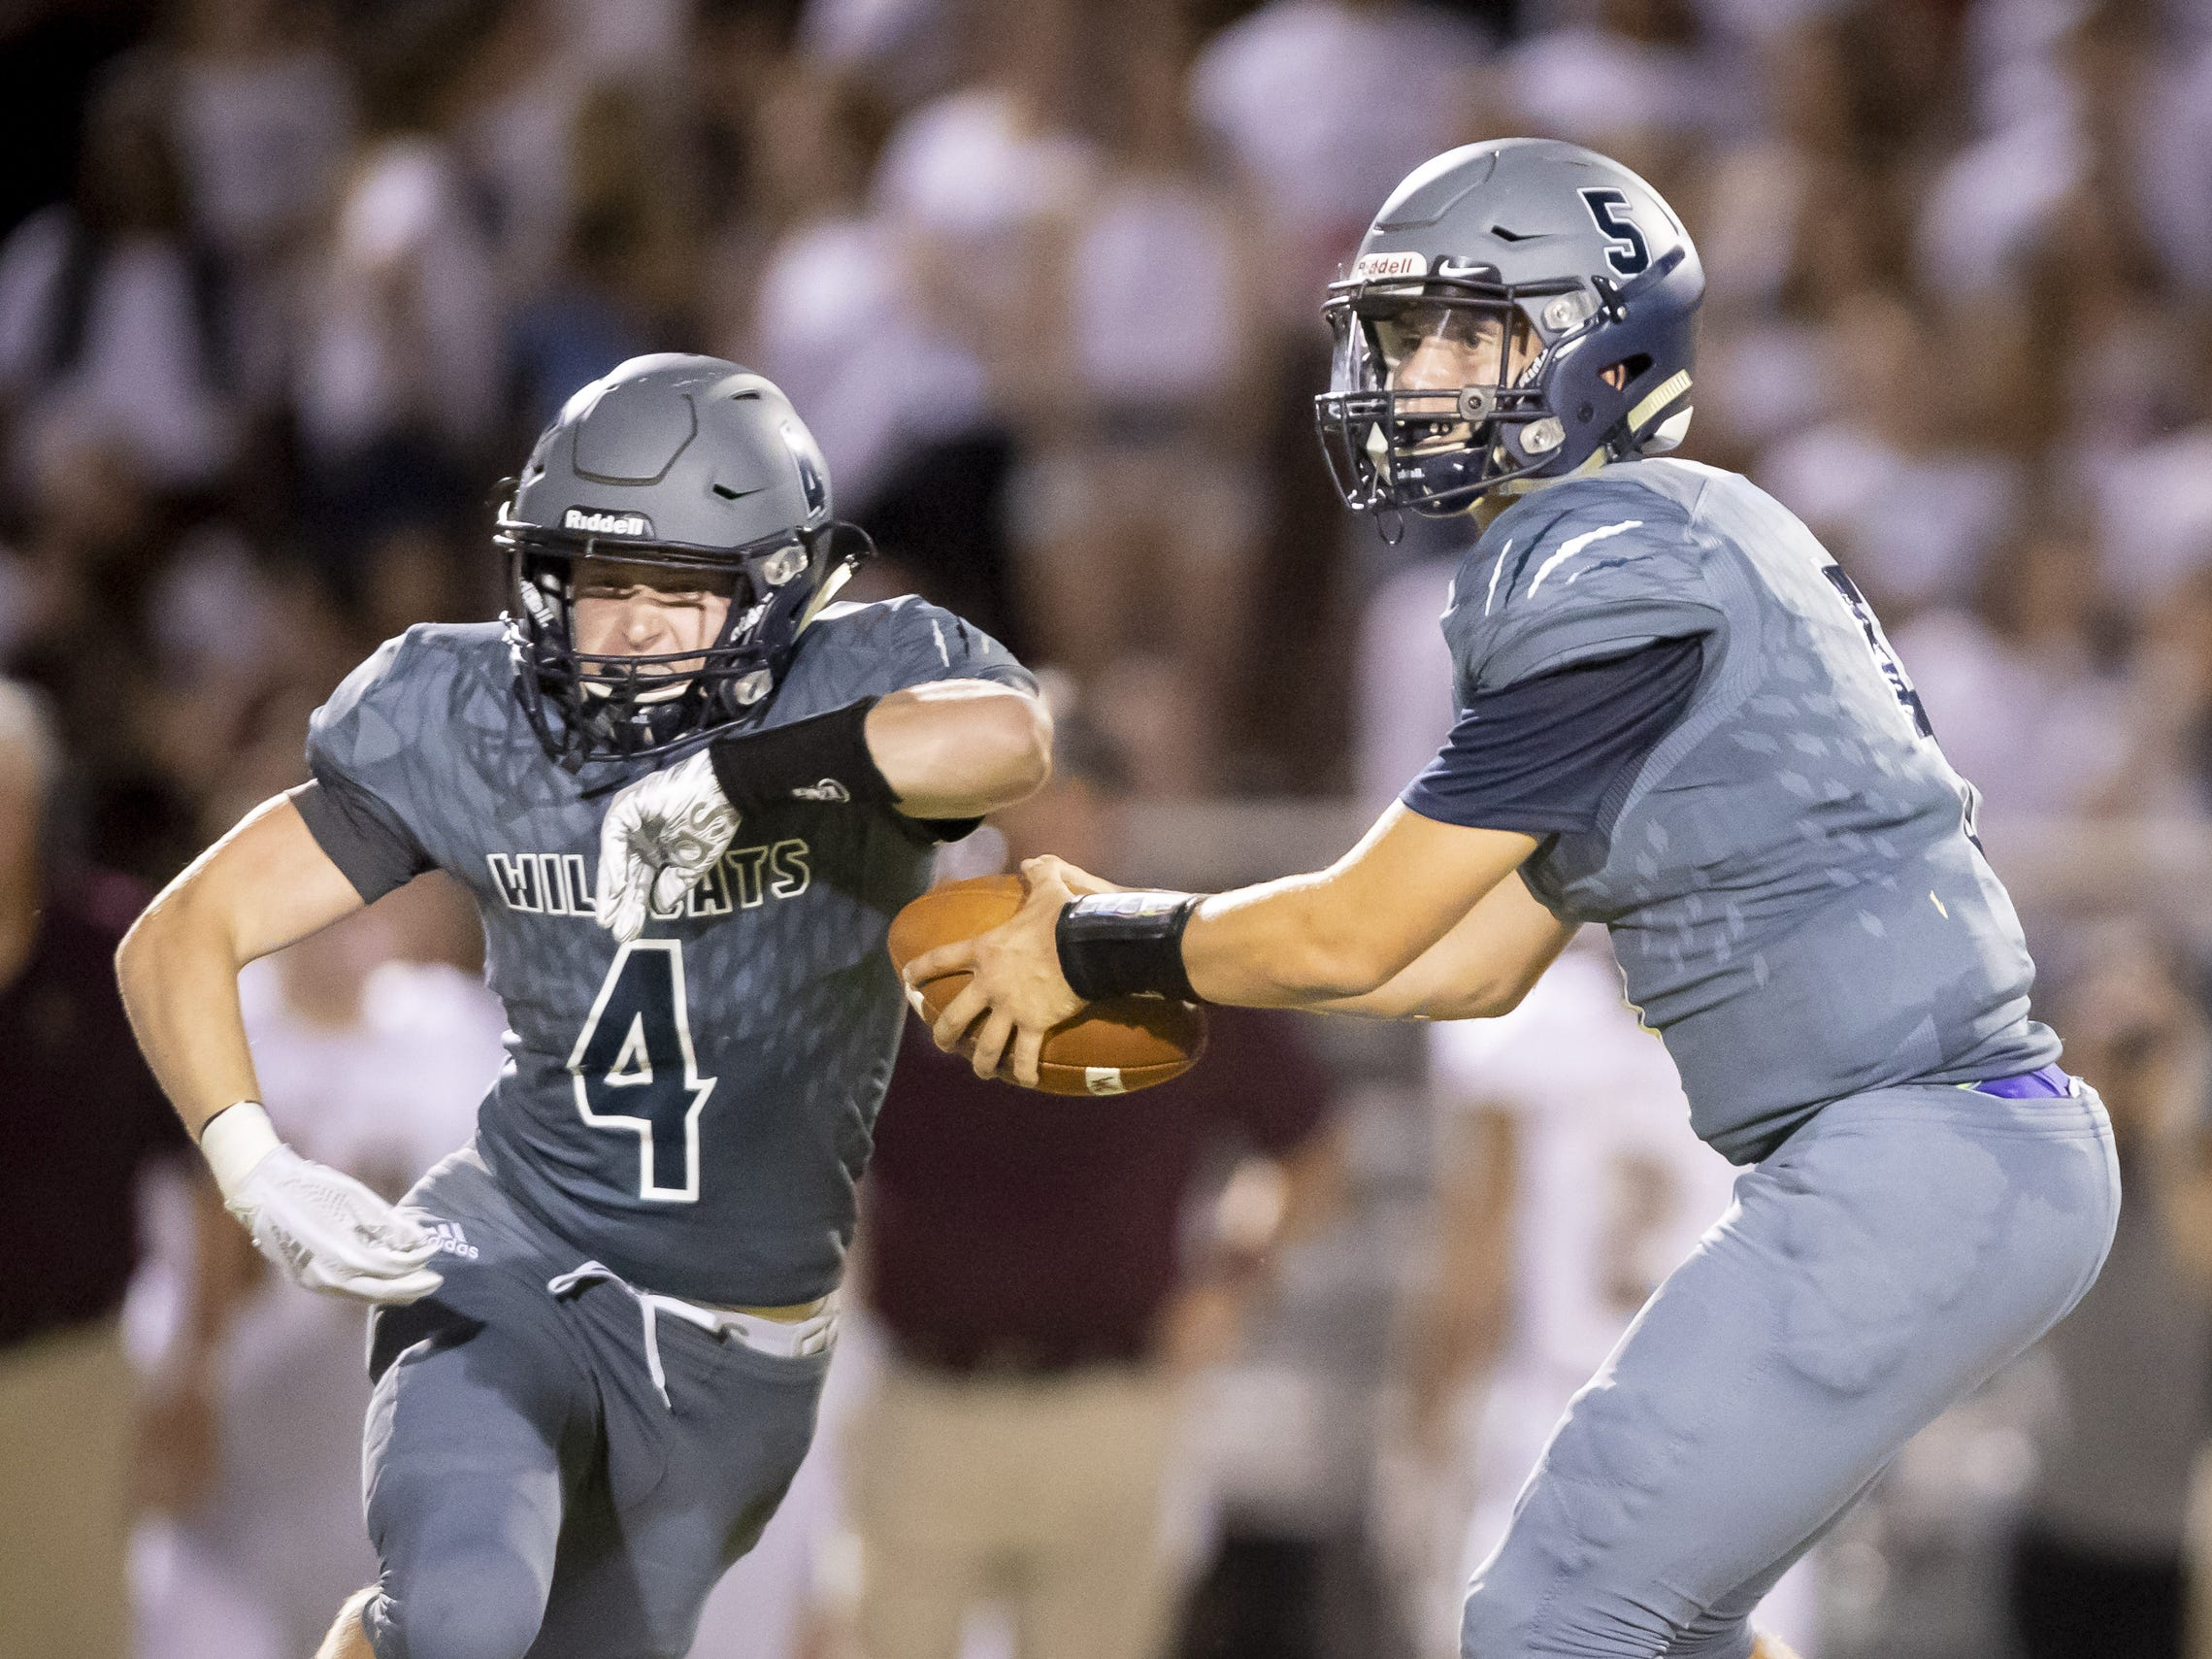 Junior quarterback Josh Ormond (5) of the Willow Canyon Wildcats hands off to junior running back Jonathan Hagestad (4) during the game against the Shadow Ridge Stallions at Willow Canyon High School on Friday, September 7, 2018 in Surprise, Arizona. #azhsfb